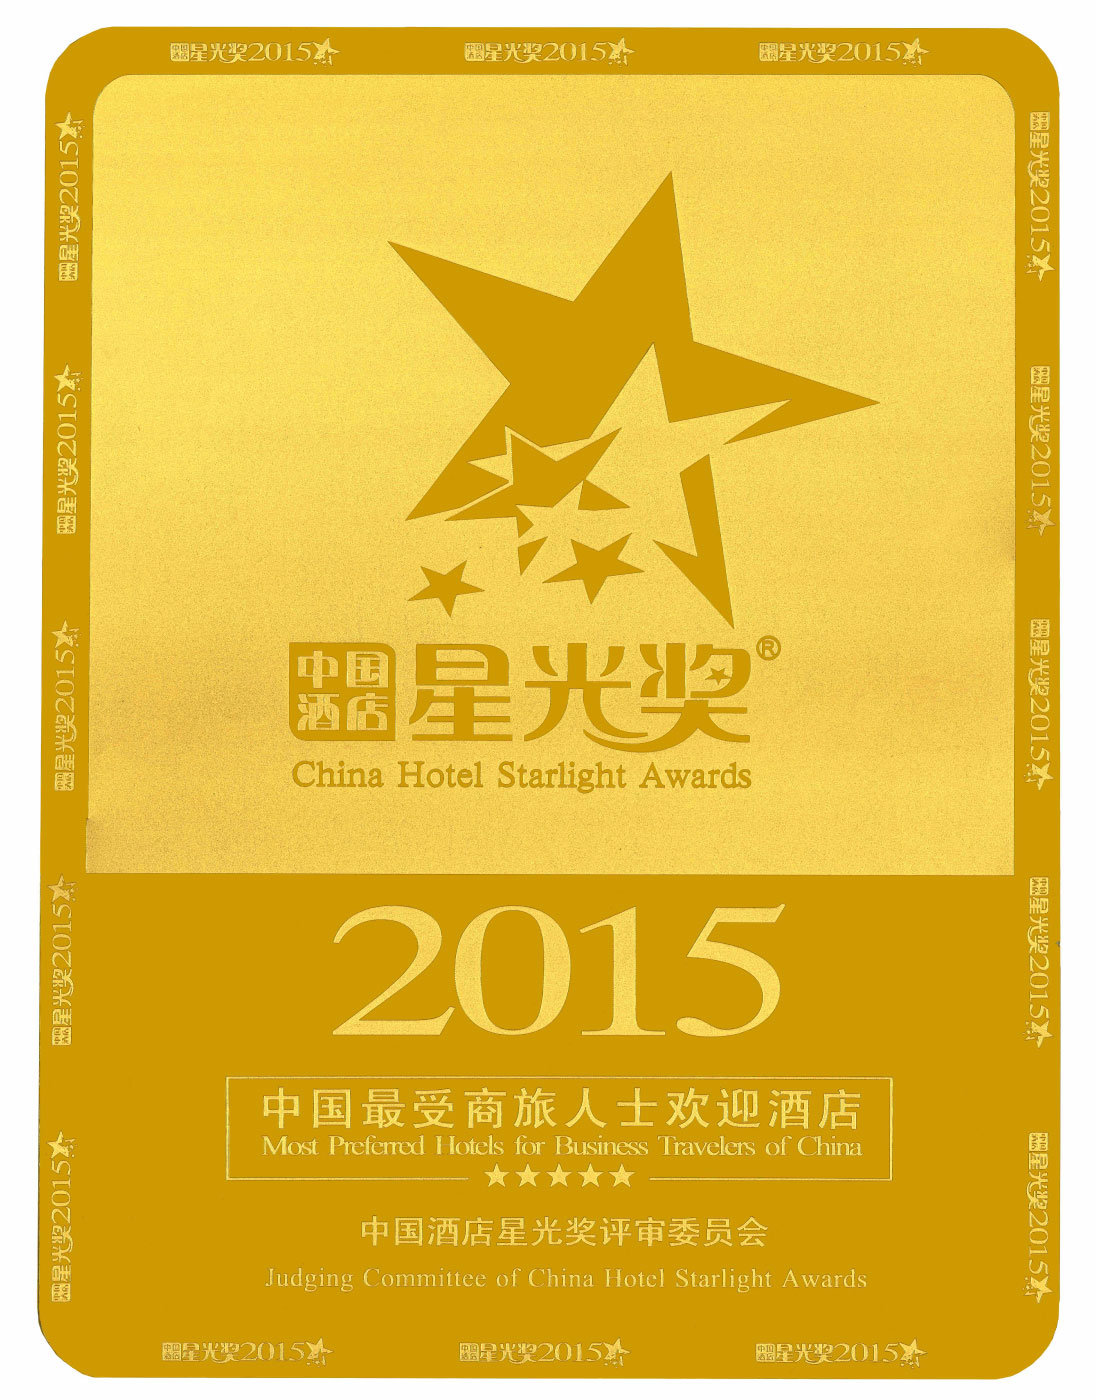 china hotel starlight awards 2015 - Yellow Hotel 2015